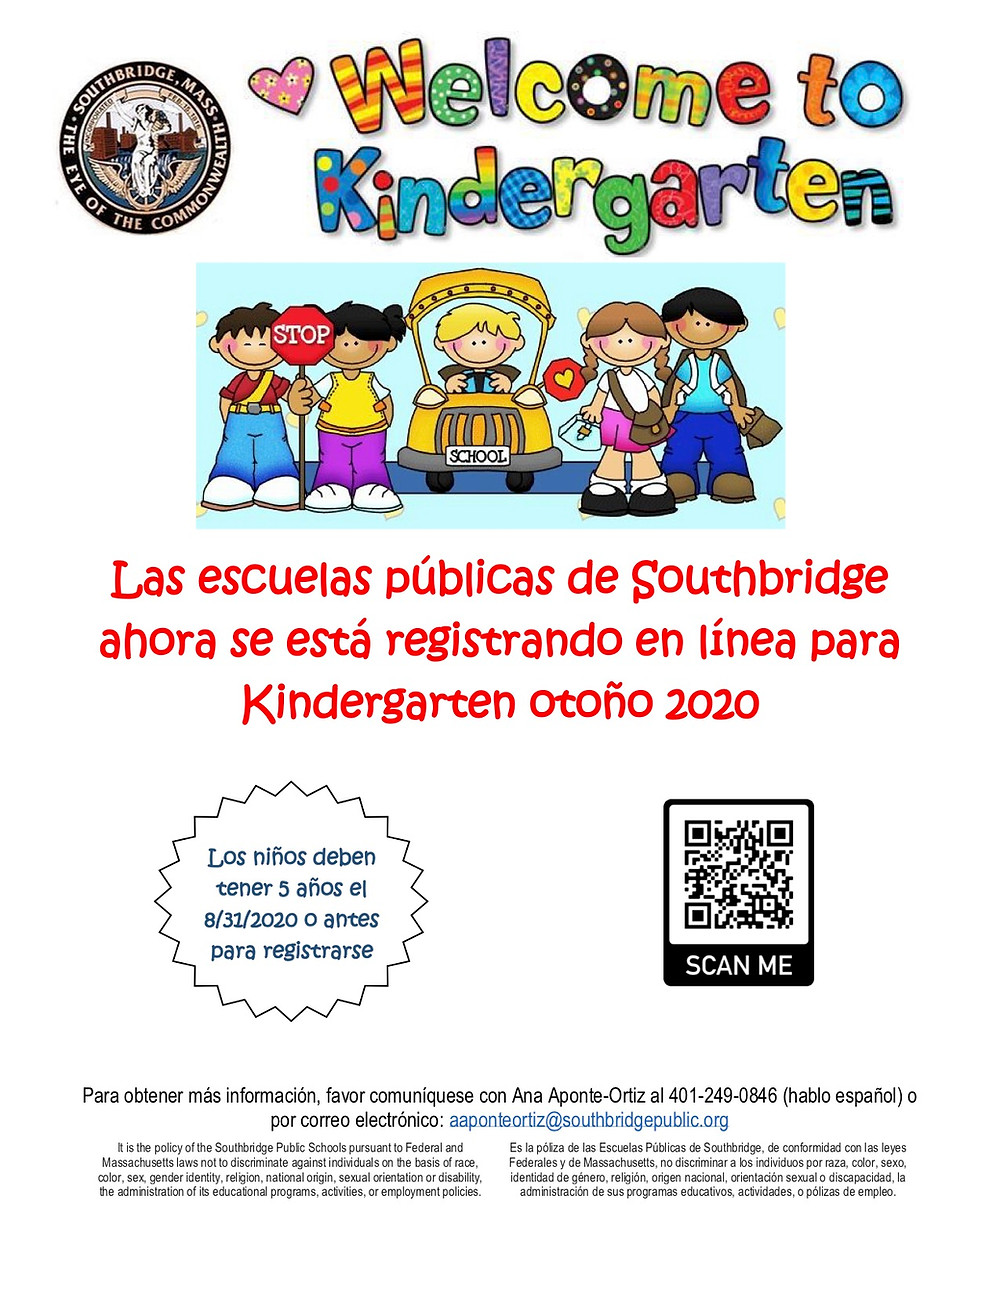 Kindergarten Flyer in Spanish.  All information on the flyer is also in the body of the blog post.